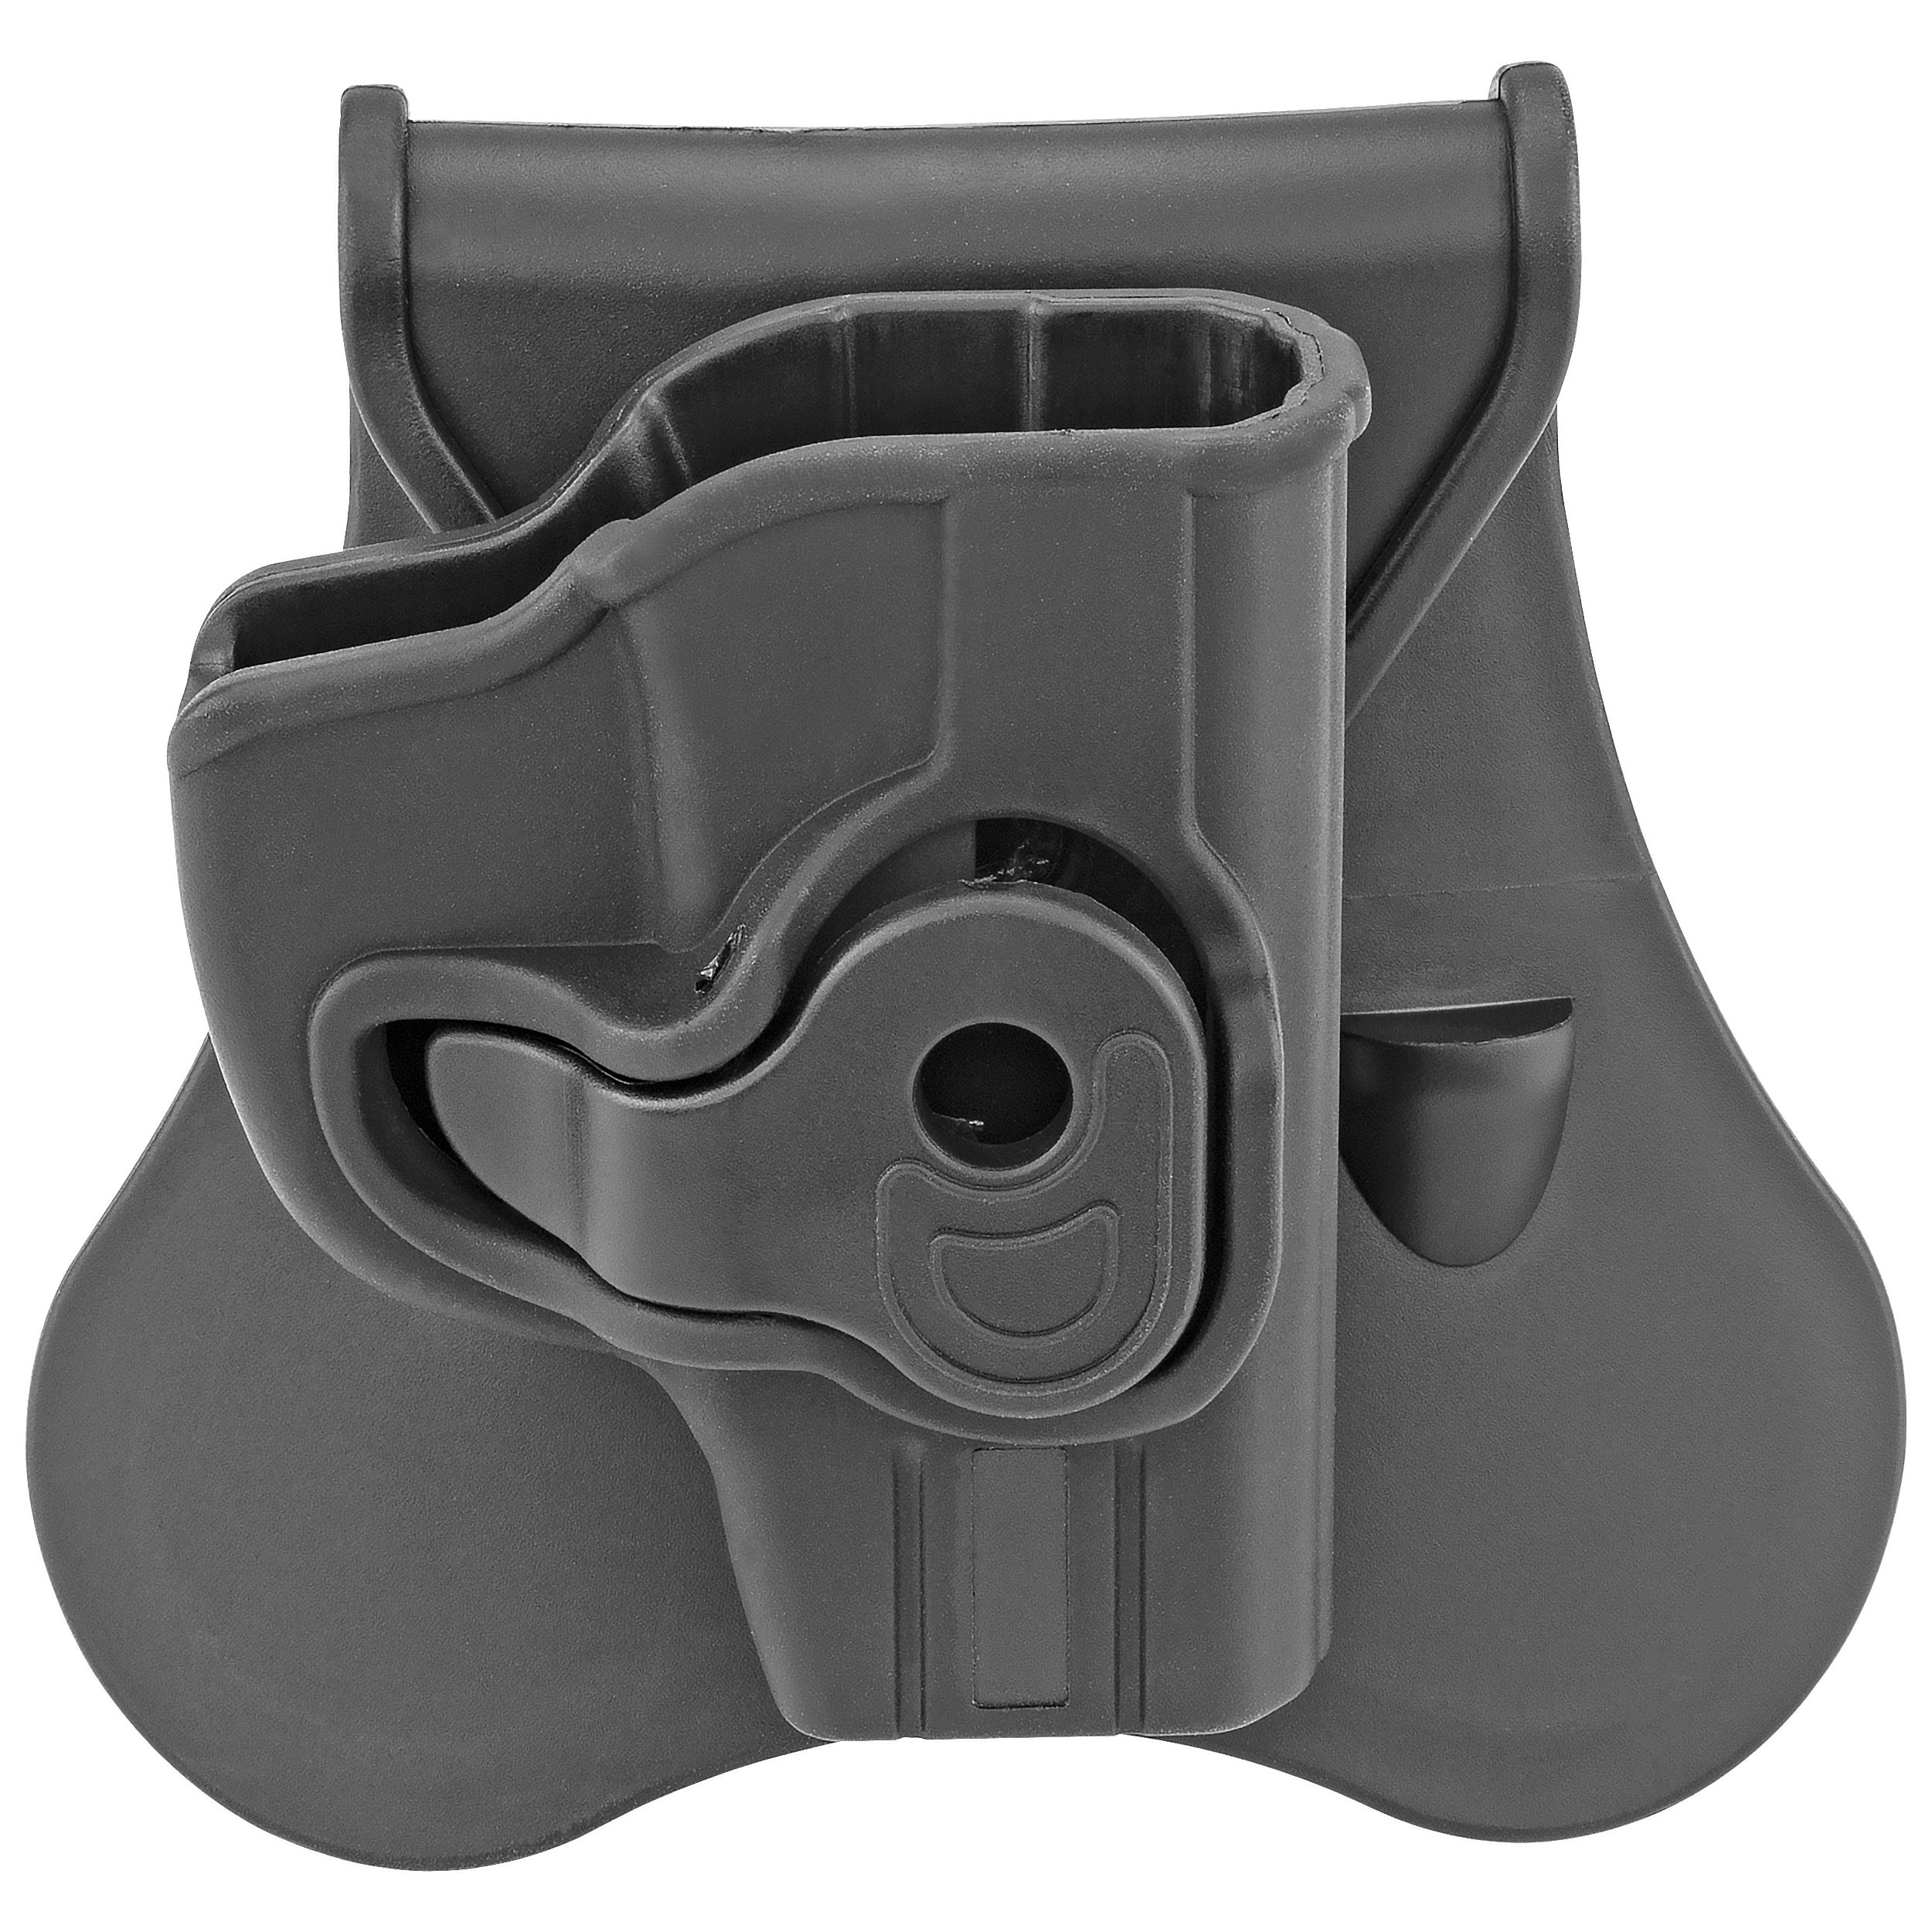 Fits Ruger LCP .380 , Kel-Tec P380A Holster